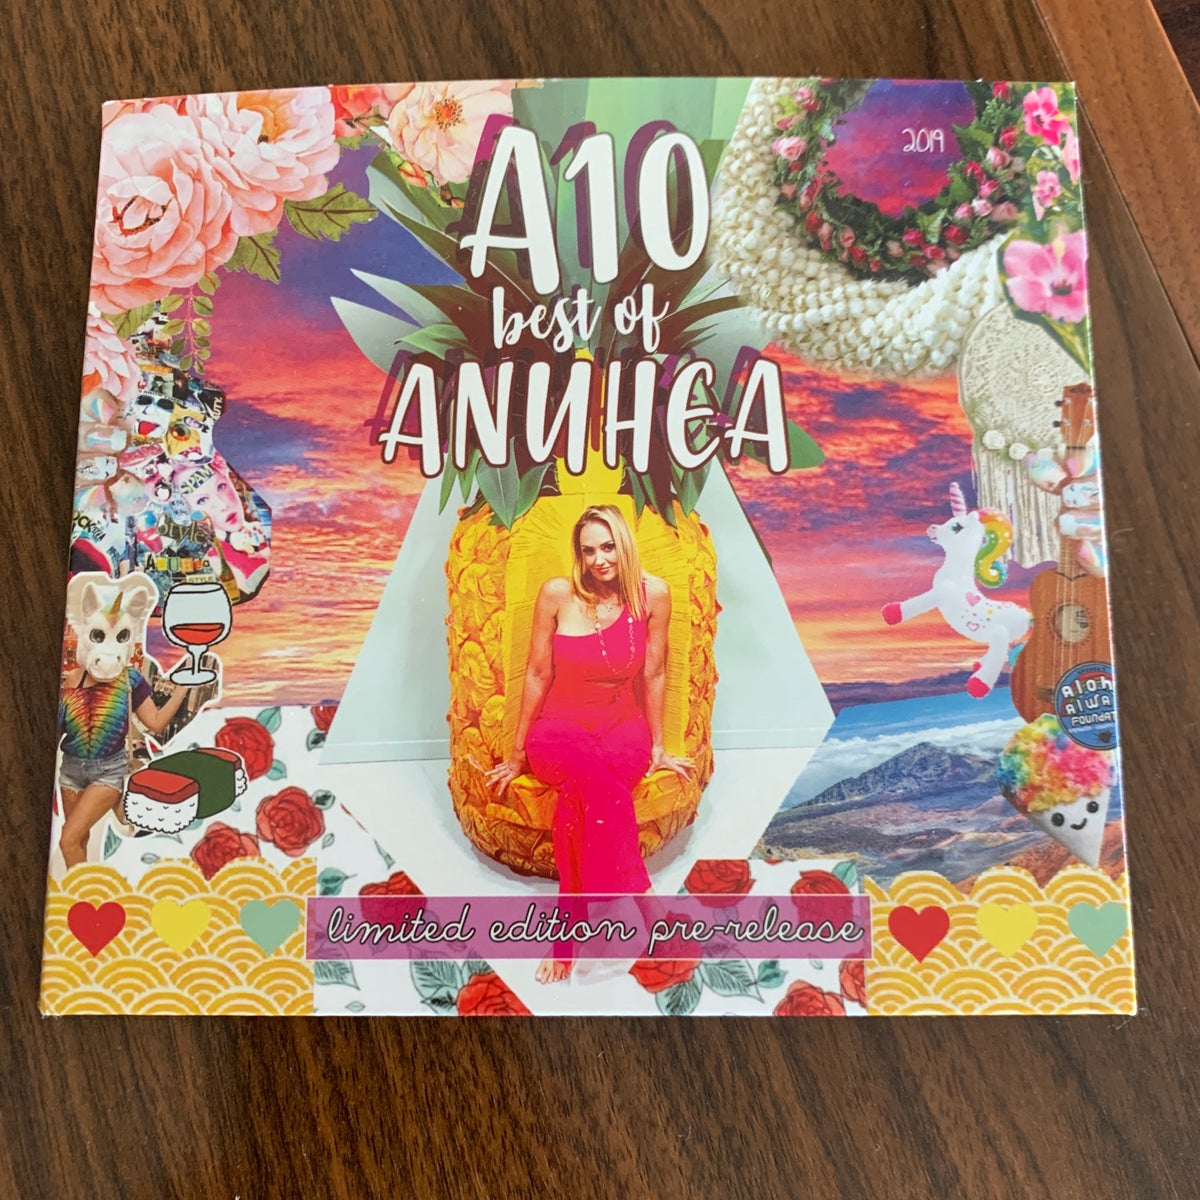 Image of A10: Best of Anuhea Limited Edition Preview (Autographed)